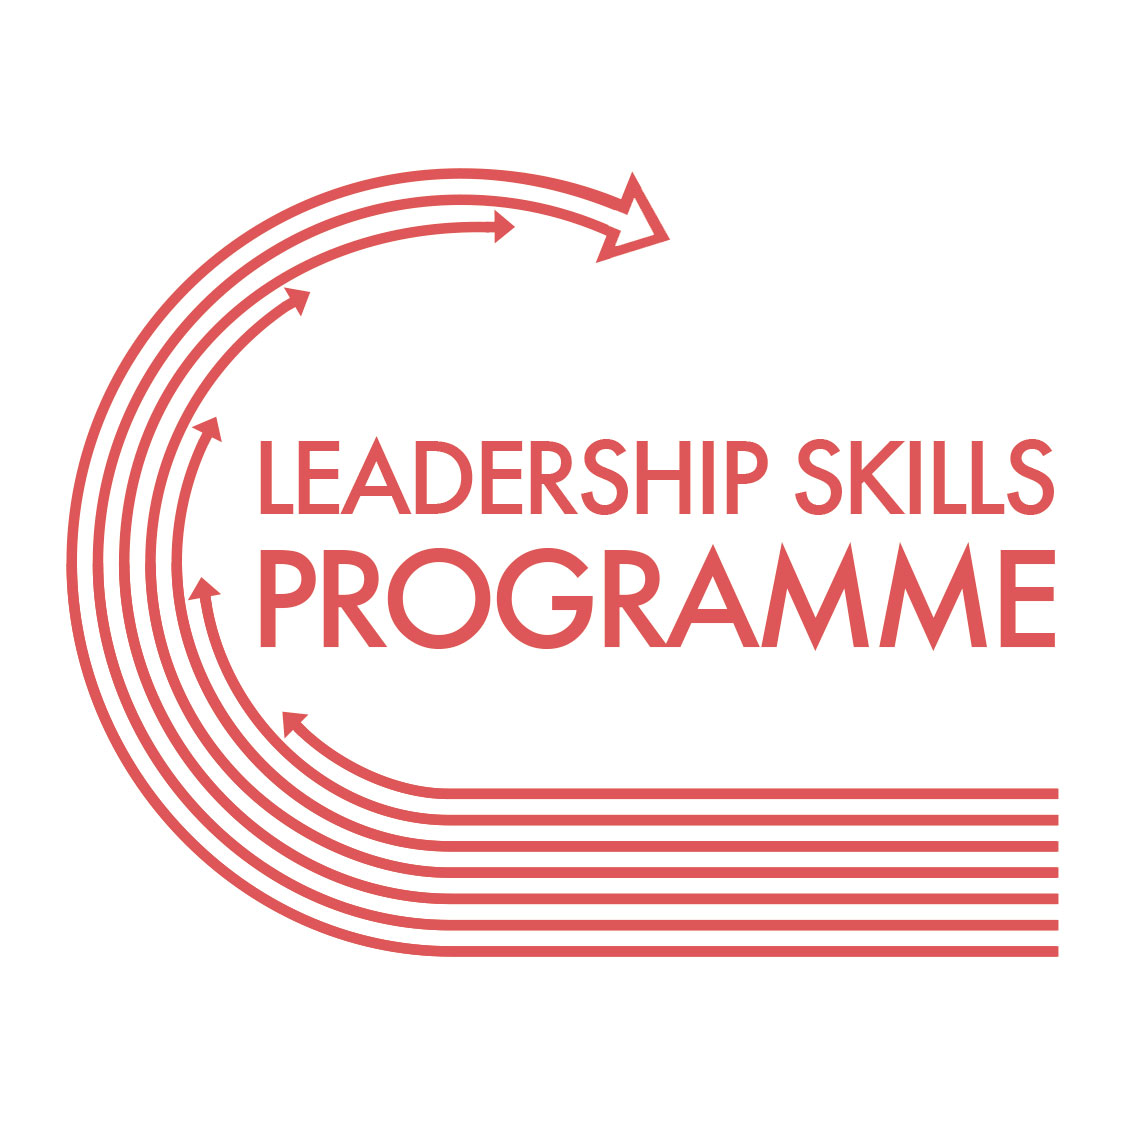 LSP Lite - £549 - Up to 25 Level 2 Leadership Skills QualificationsAny combination of subjects (English, Science, Maths)1 Tutor Training PlaceEngaging worksheets, activities and resources